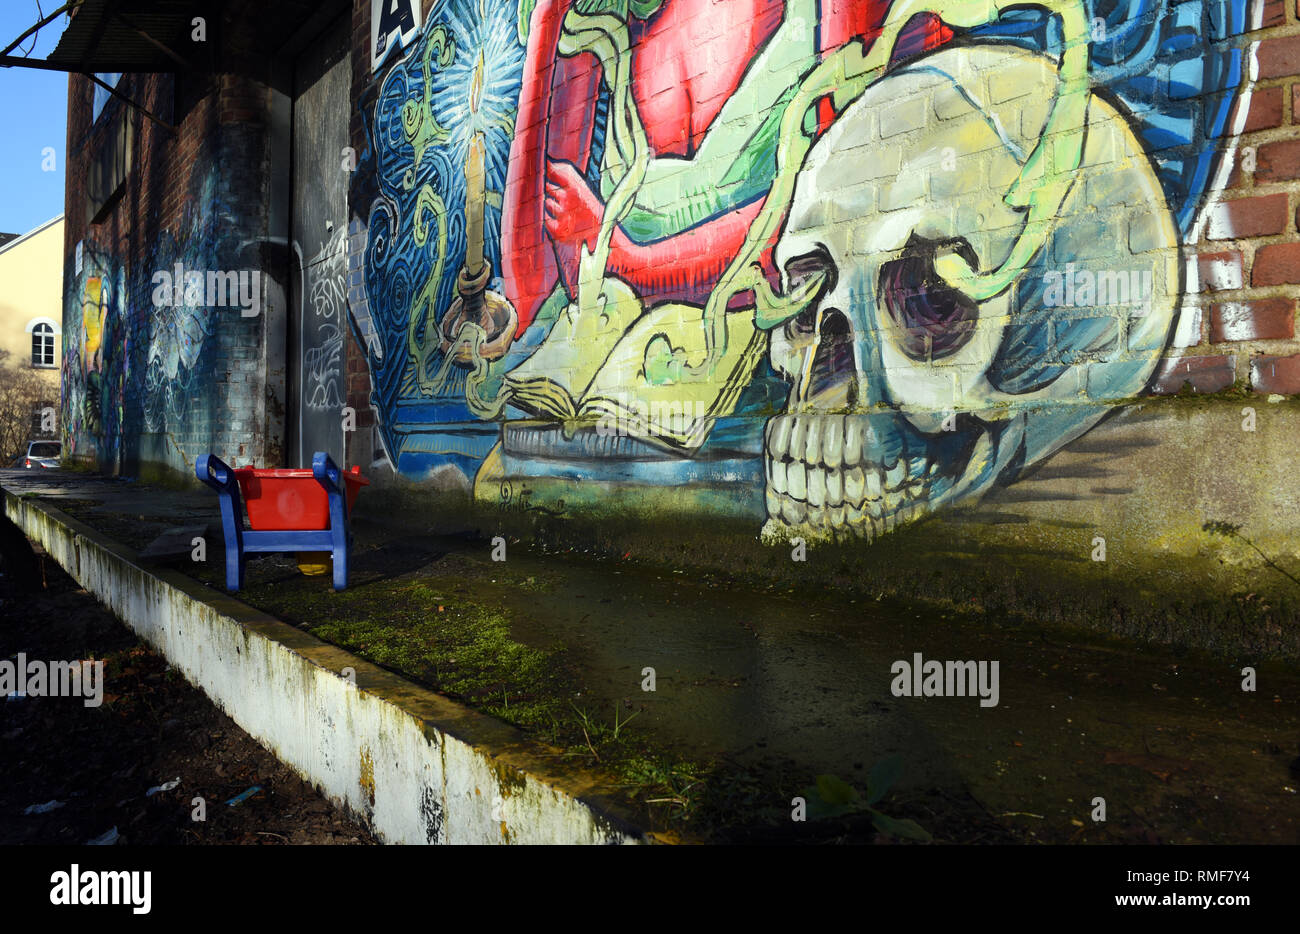 Krefeld, Germany. 11th Feb, 2019. 'Street Art Art' (partial view) at the building of the 'Rhine Side Gallery' on the banks of the Rhine in the district of Uerdingen, which was created by the street art artist 'Ruben Poncia' as part of the event 'Rhine Side Gallery 2018' of the city of Krefeld. Credit: Horst Ossinger/dpa/Alamy Live News - Stock Image